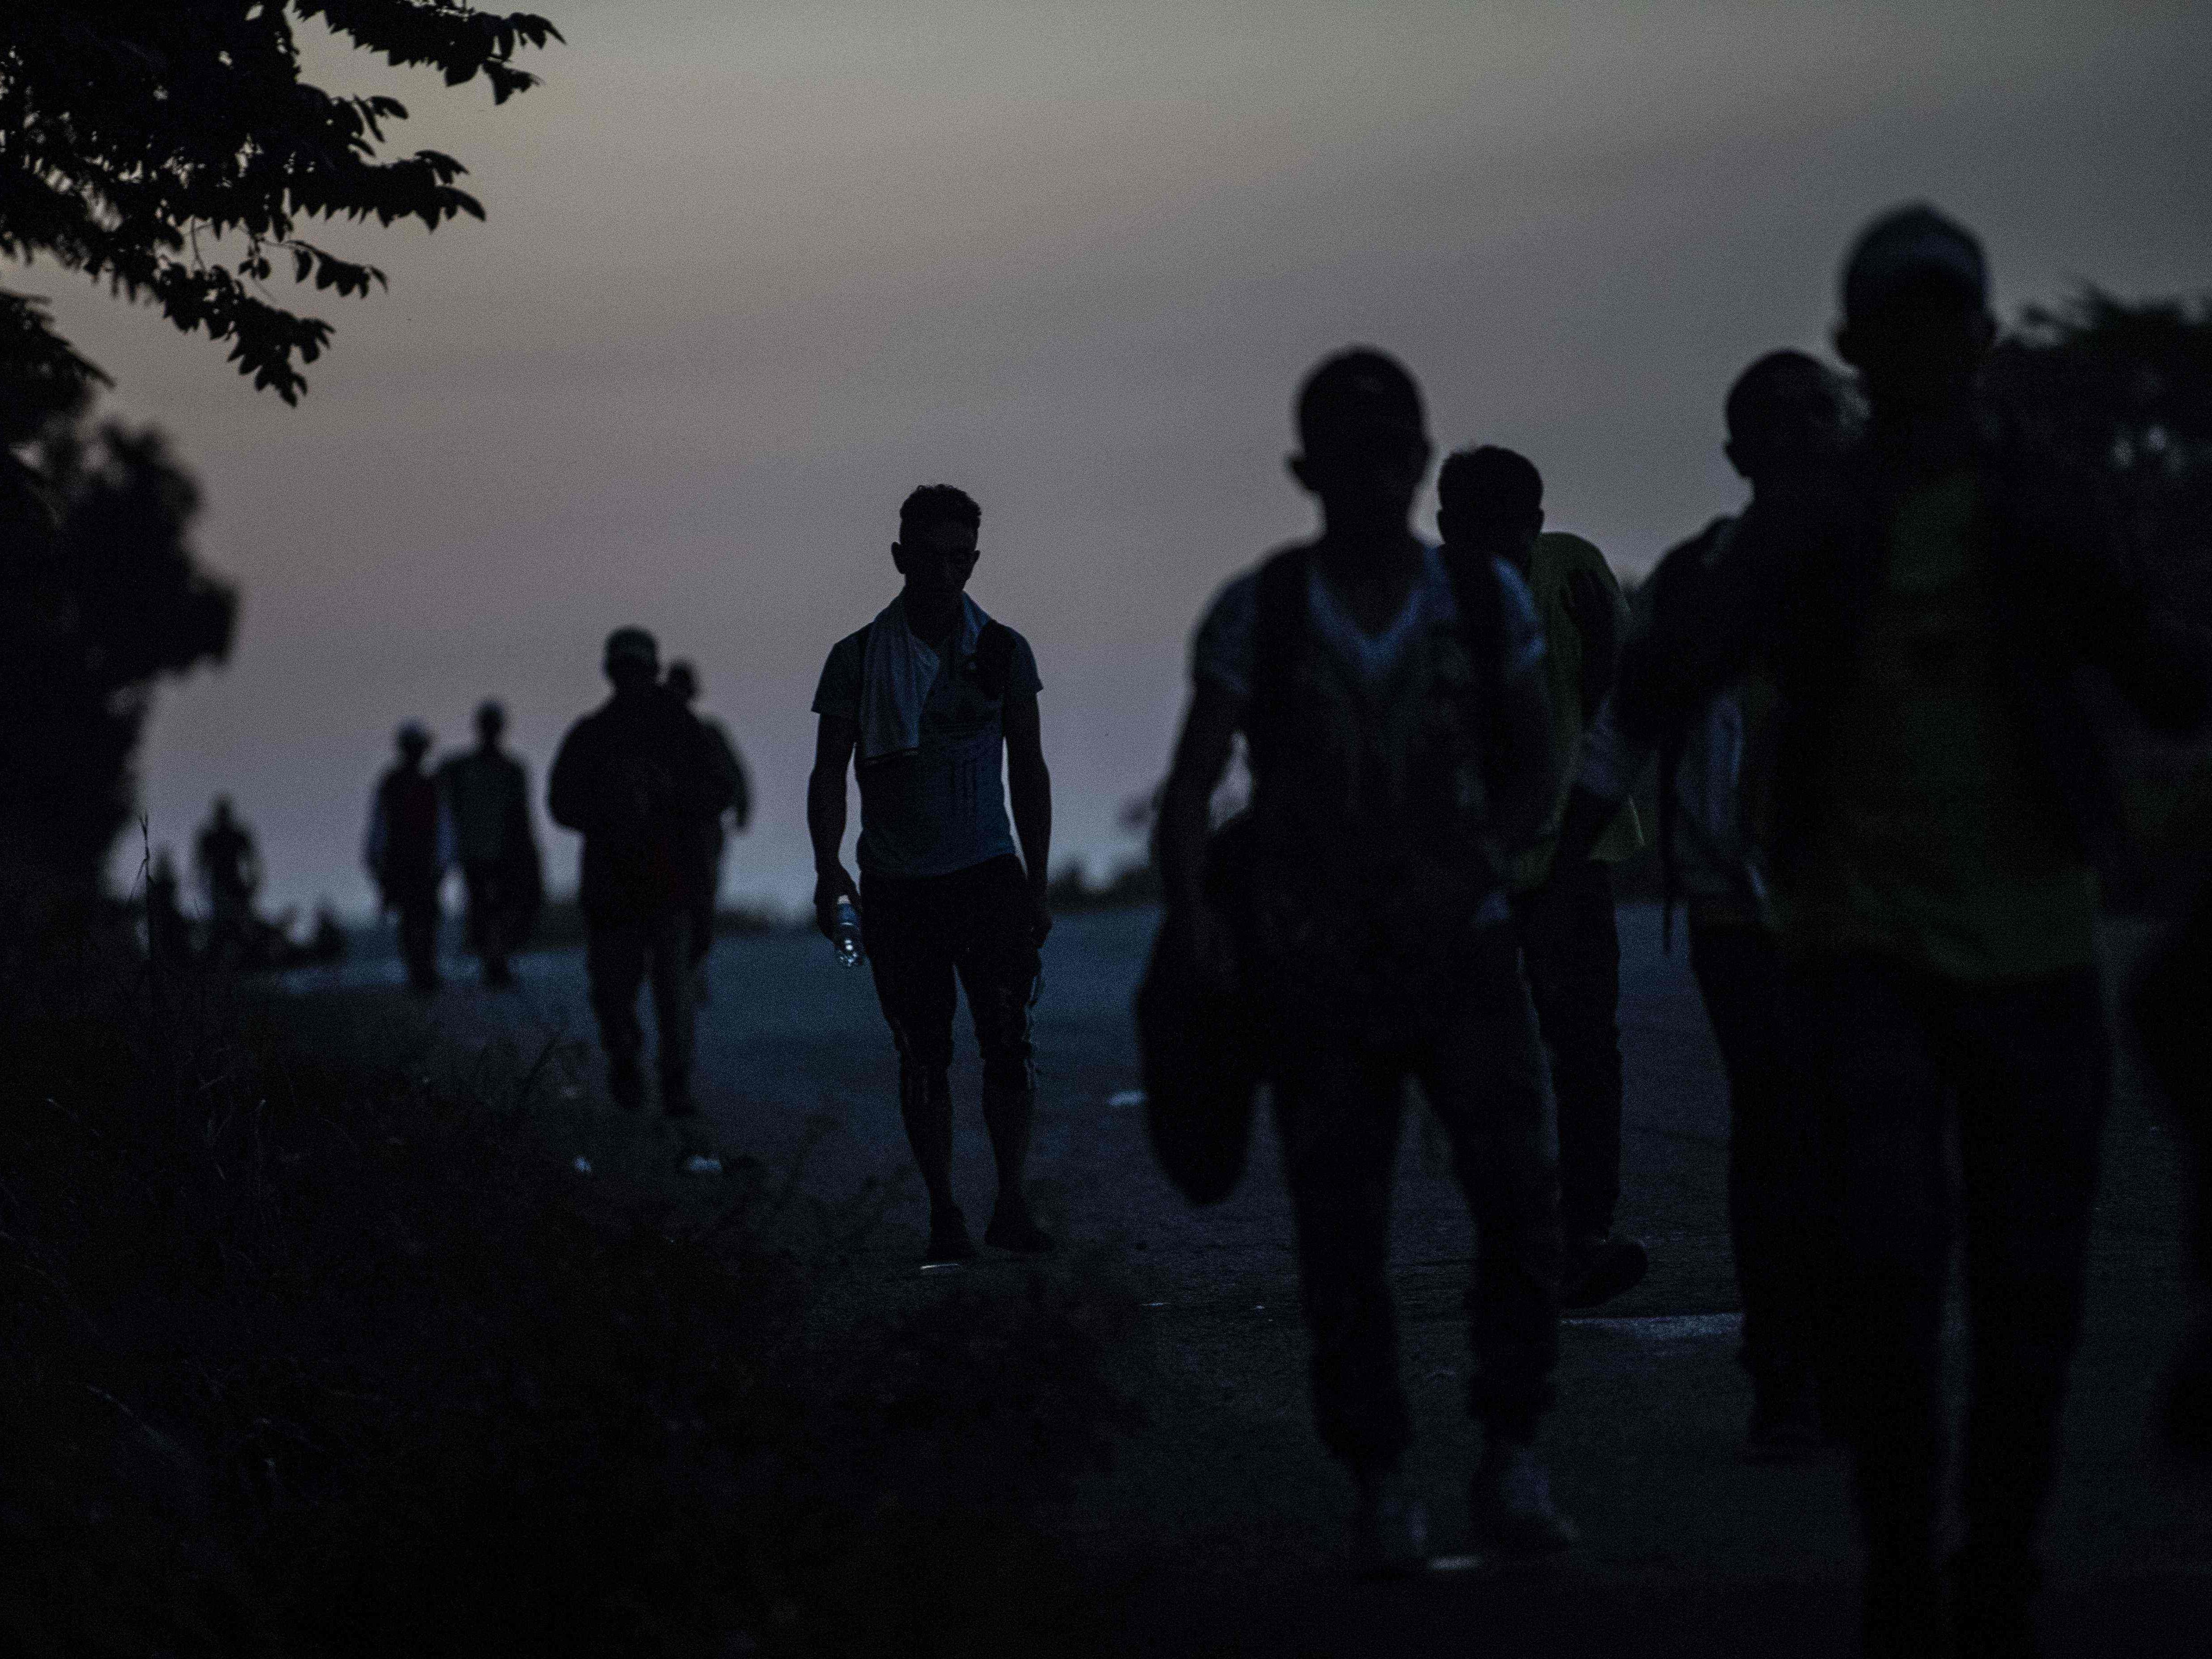 Central American migrants heading in a caravan to the U.S., walk near Mapastepec, southern Mexico, Oct. 25, 2018.  Thousands of Central American migrants crossing Mexico toward the United States in a caravan have resumed their long trek, walking about 12 hours to their next destination.